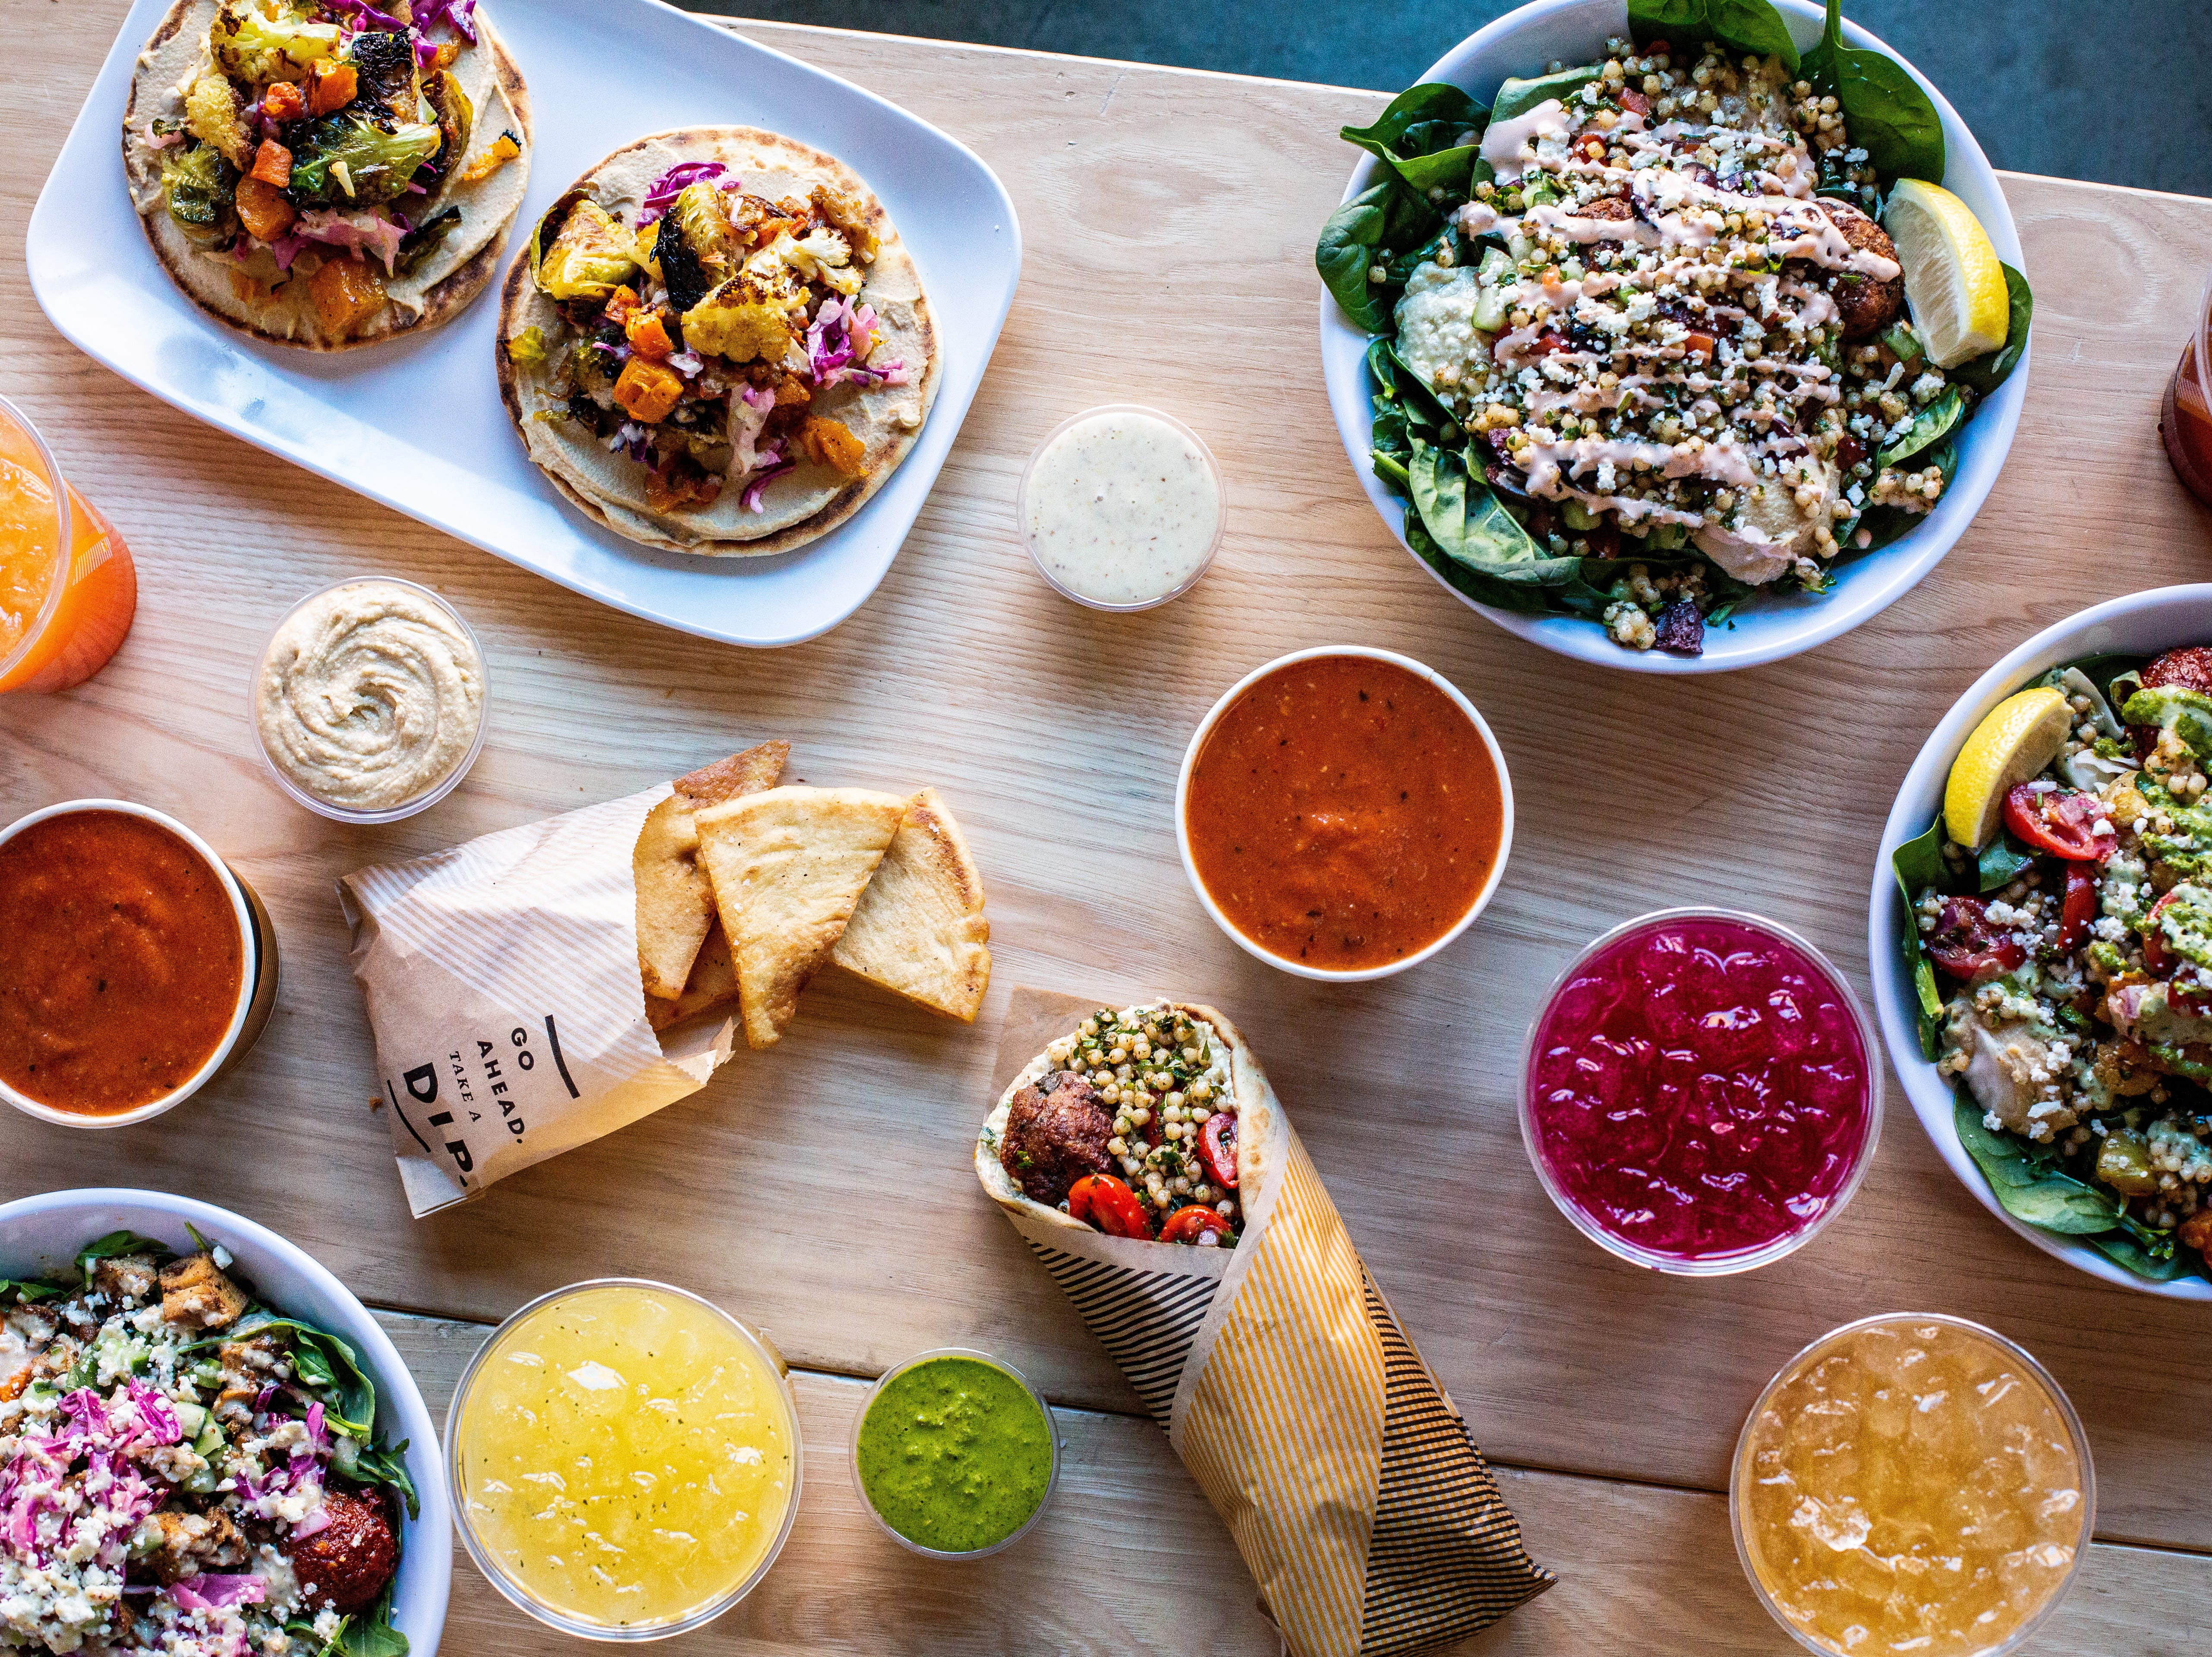 Cava is a fast-casual Mediterranean restaurant offering salads, bowls, dips and more.